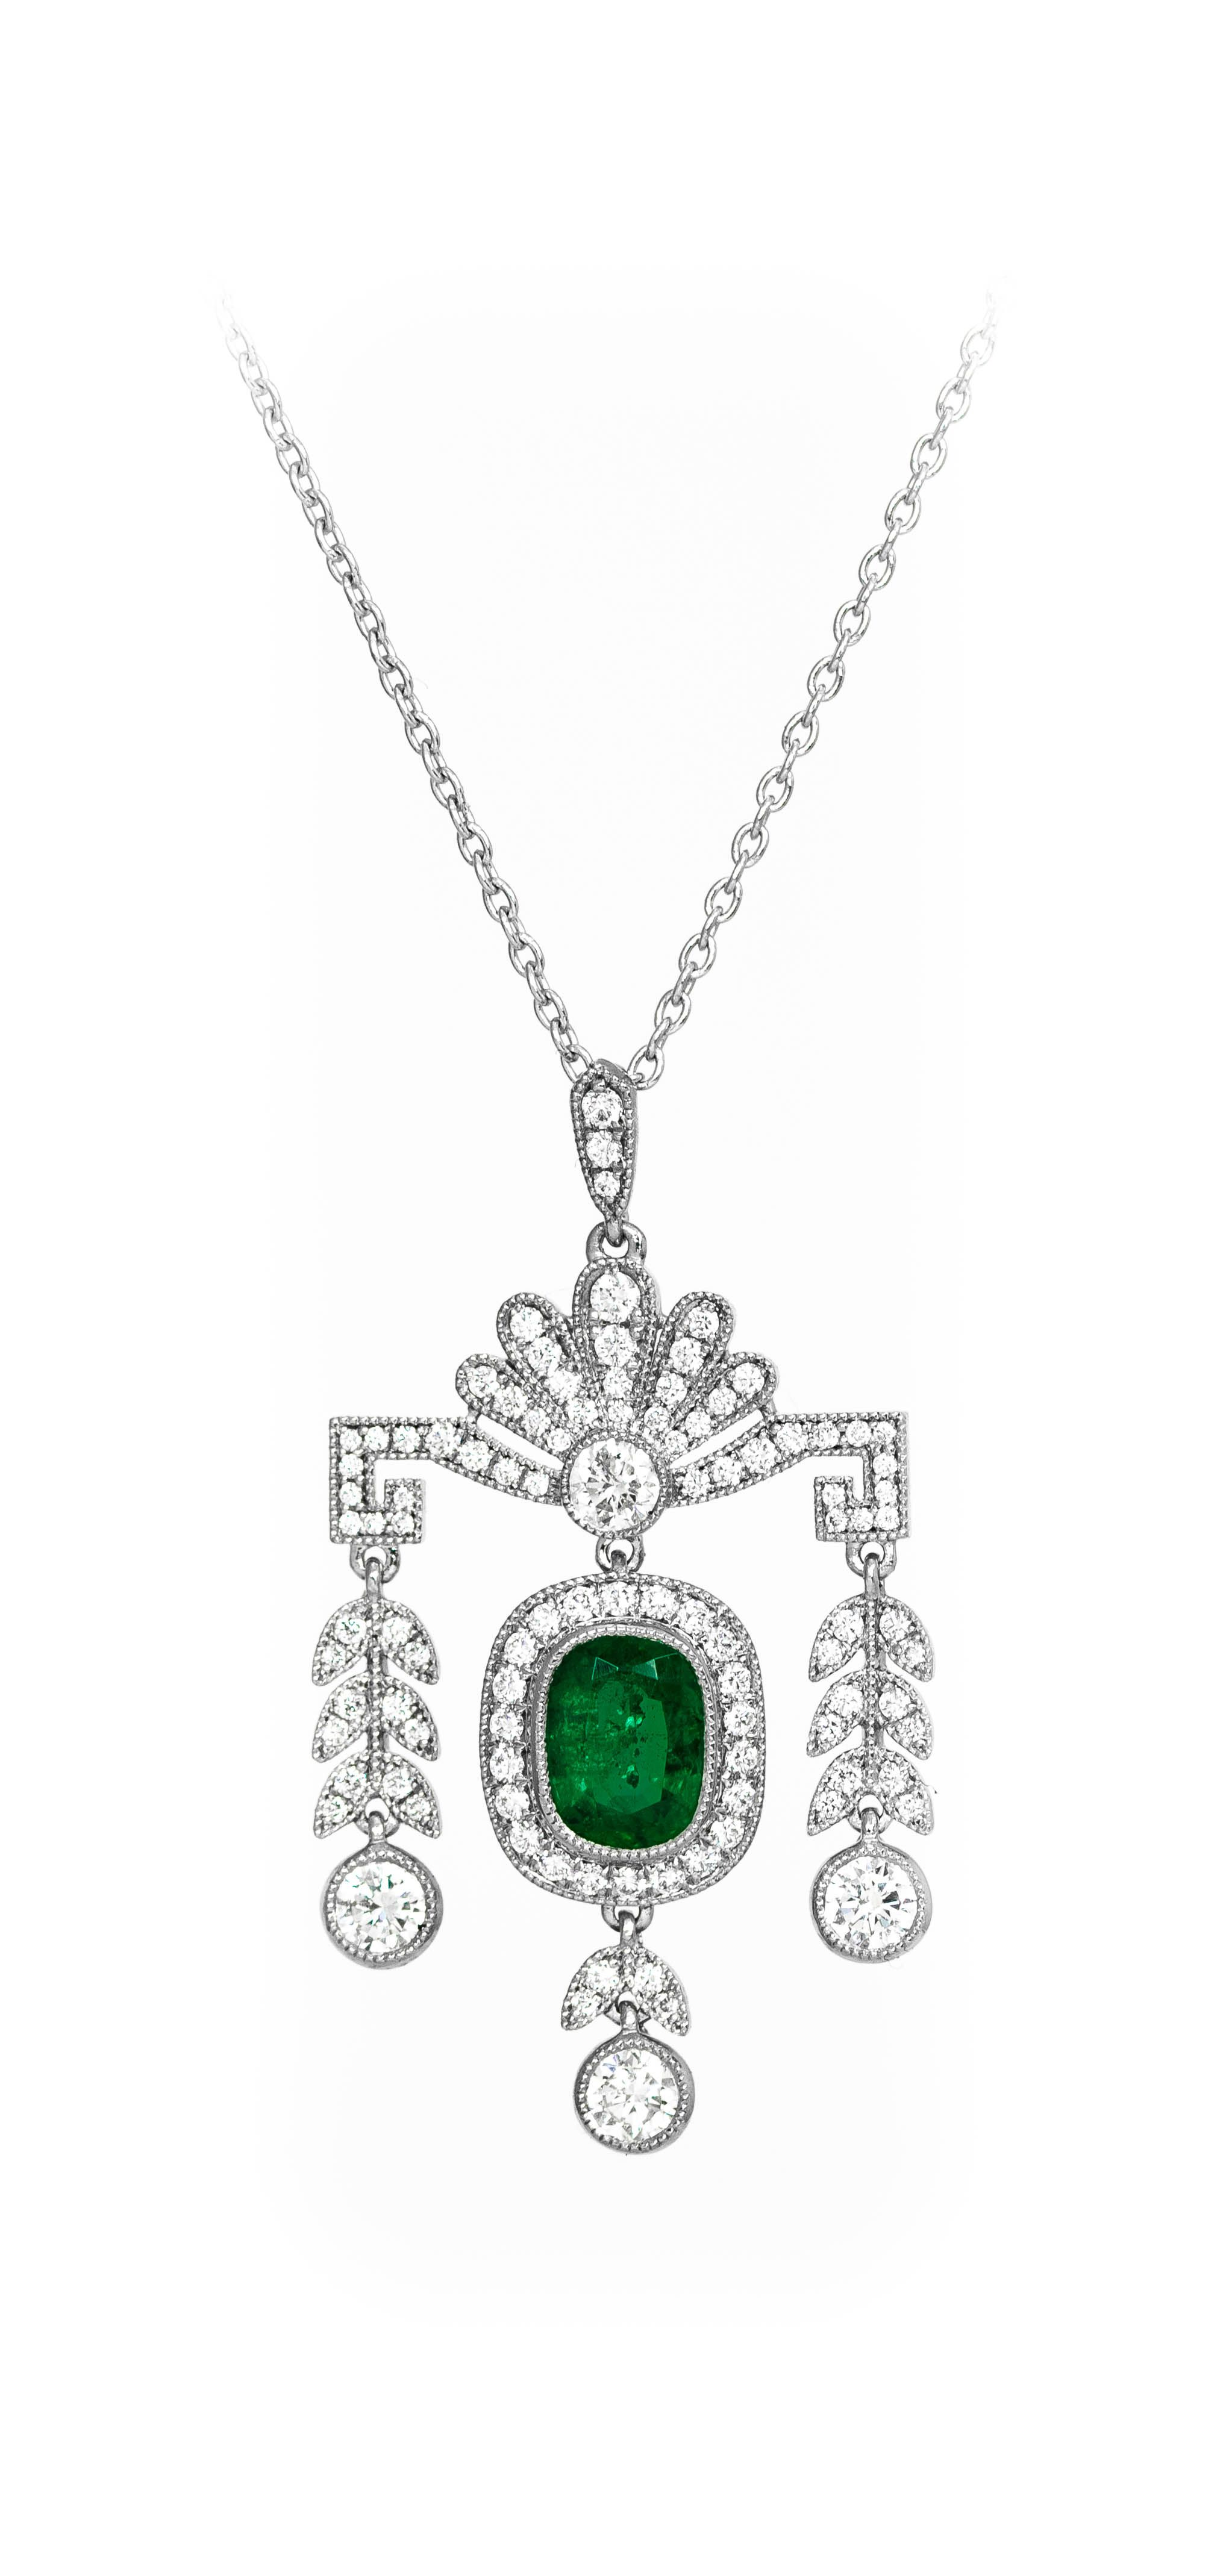 Platinum Mounted 0 93ct Oblong Cushion Cut Emerald And